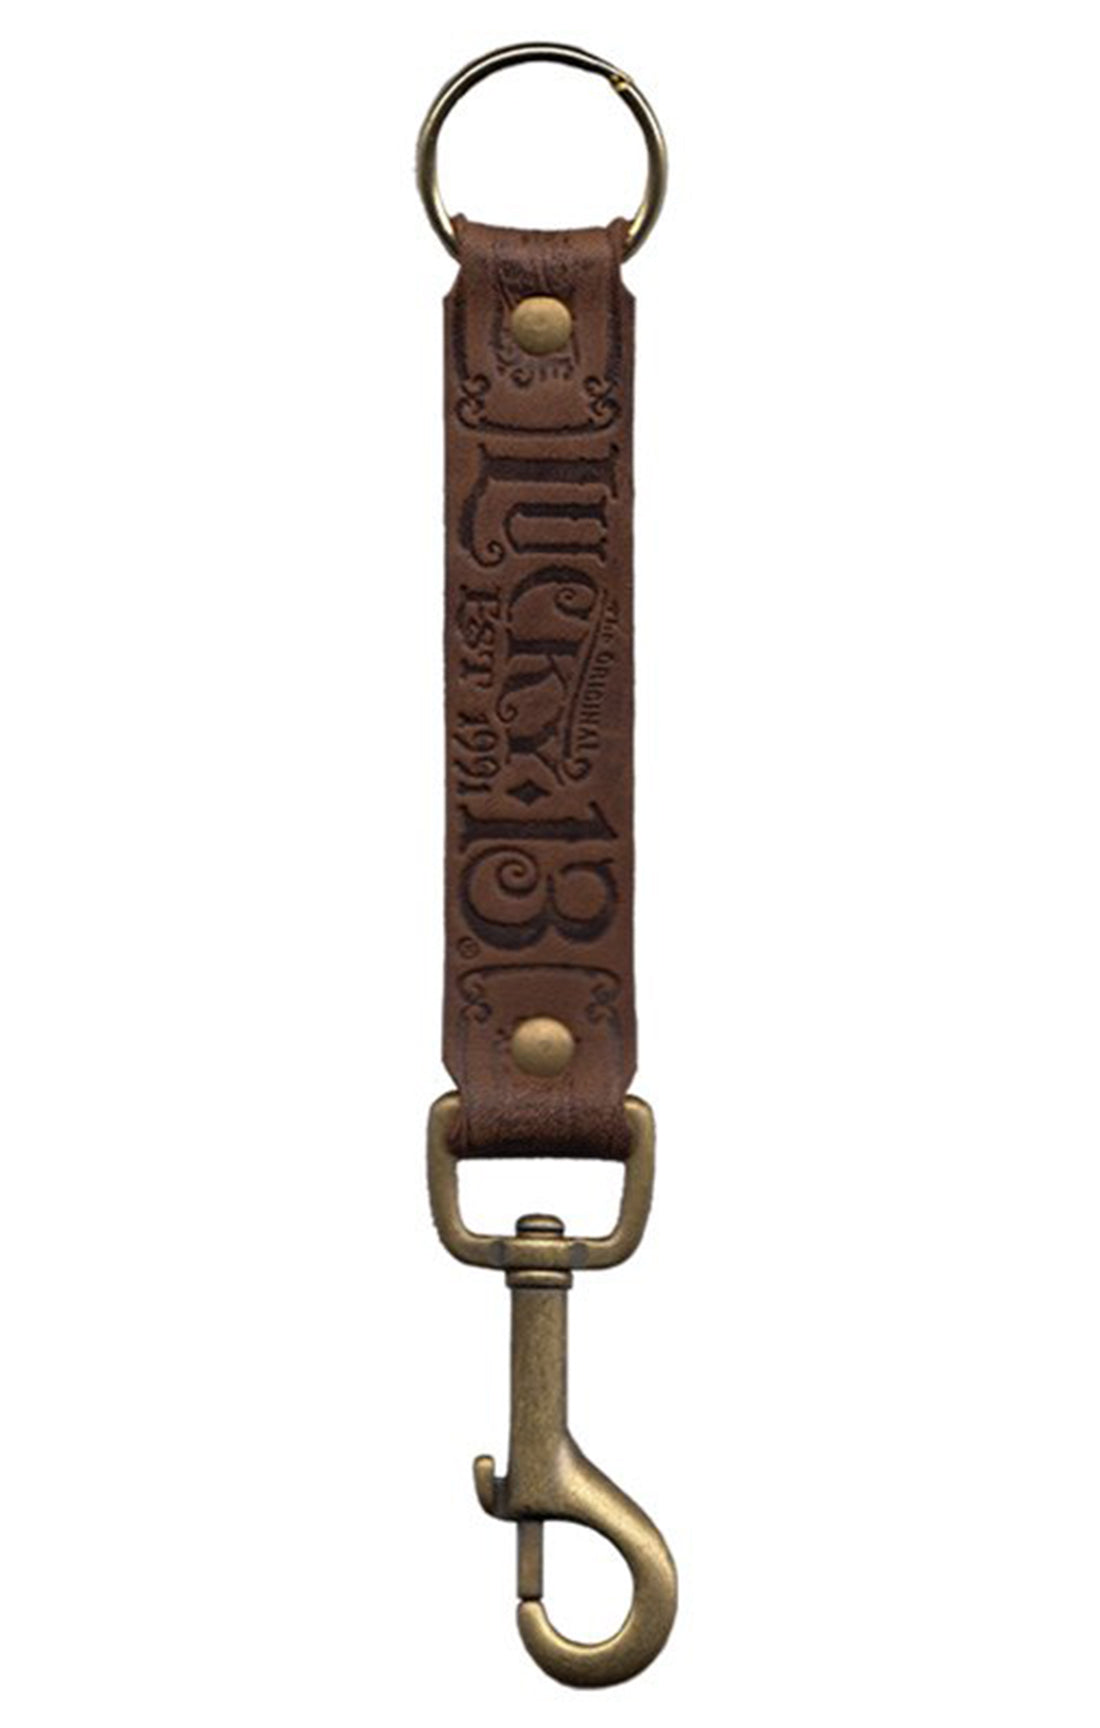 The MFG CO Leather Key Fob - ANTIQUED BROWN